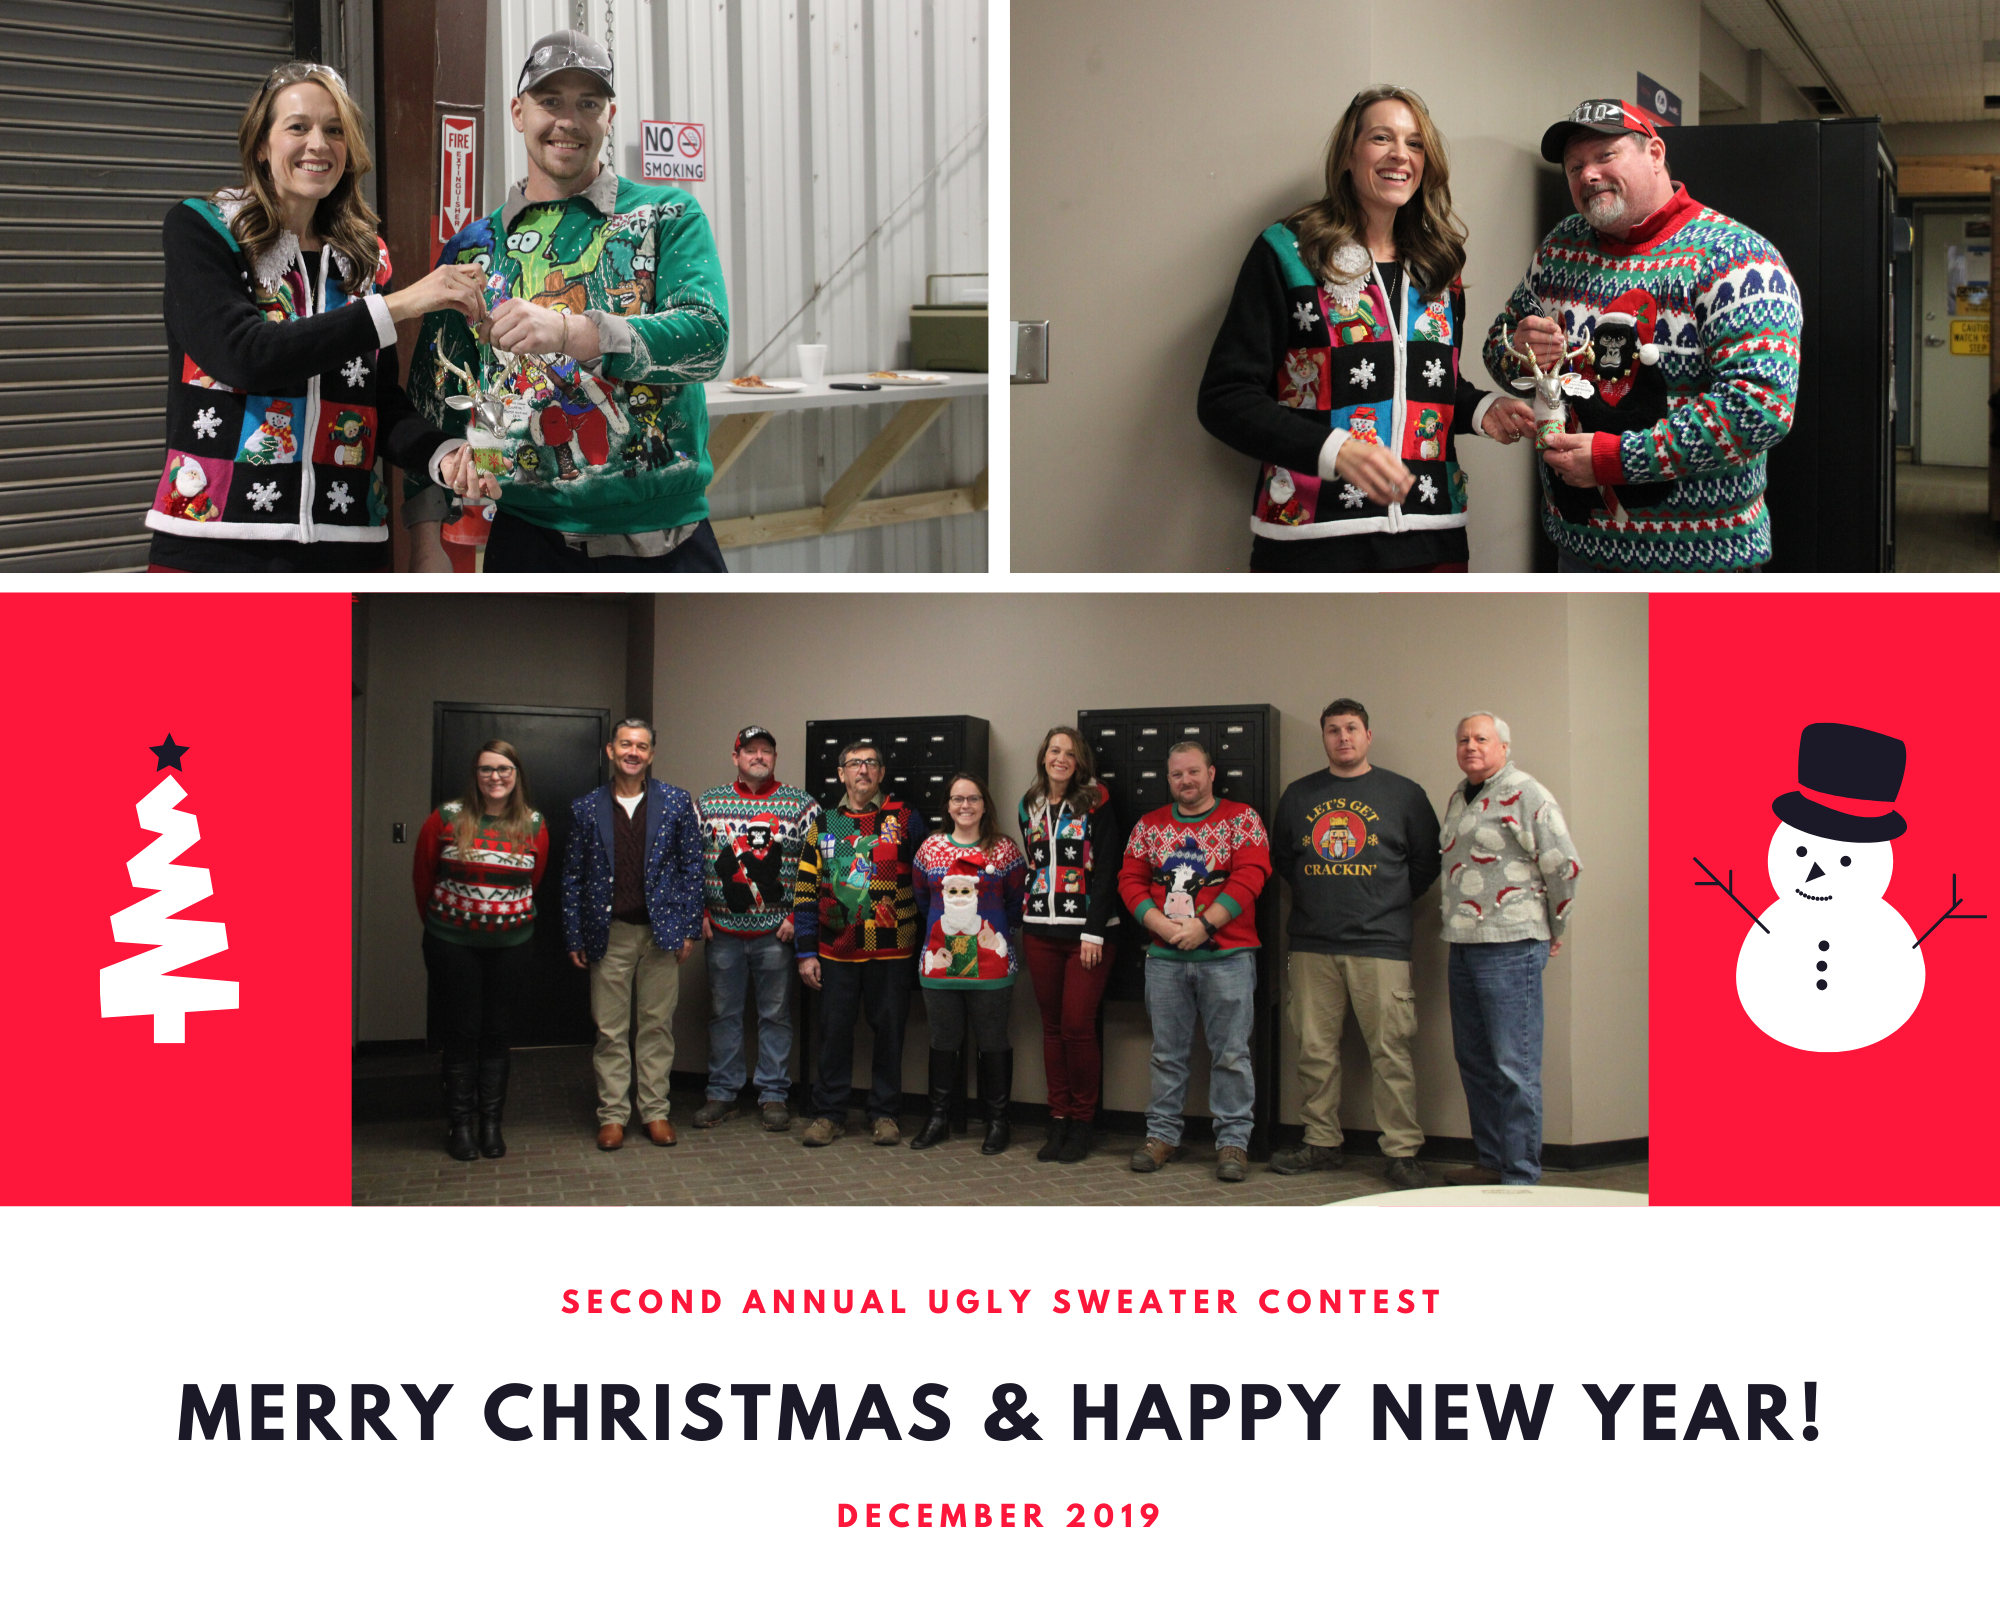 DropBox Inc, MSSI, Portable Solutions Group, ugly sweater contest, Merry Christmas, Happy New Year, Portable Solutions Manufacturing